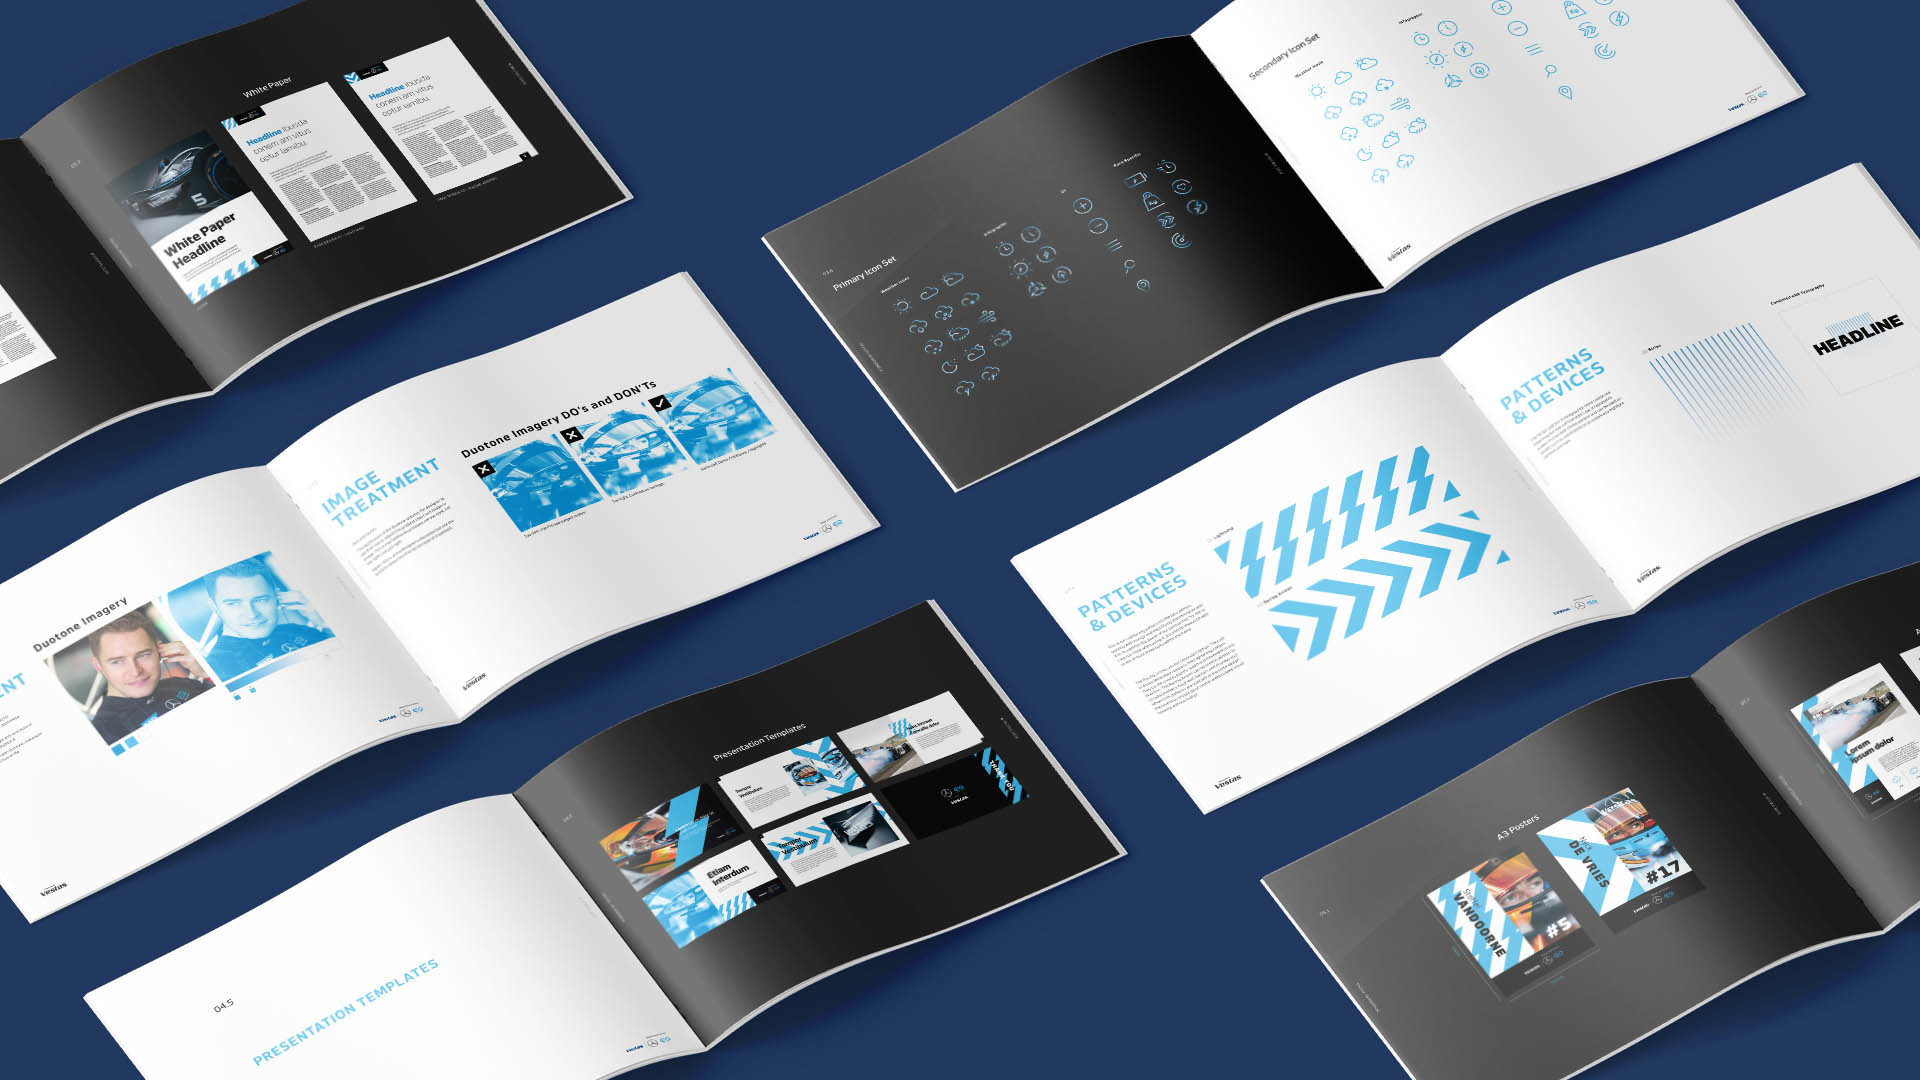 Vestas brand guidelines laid out with multiple pages on display